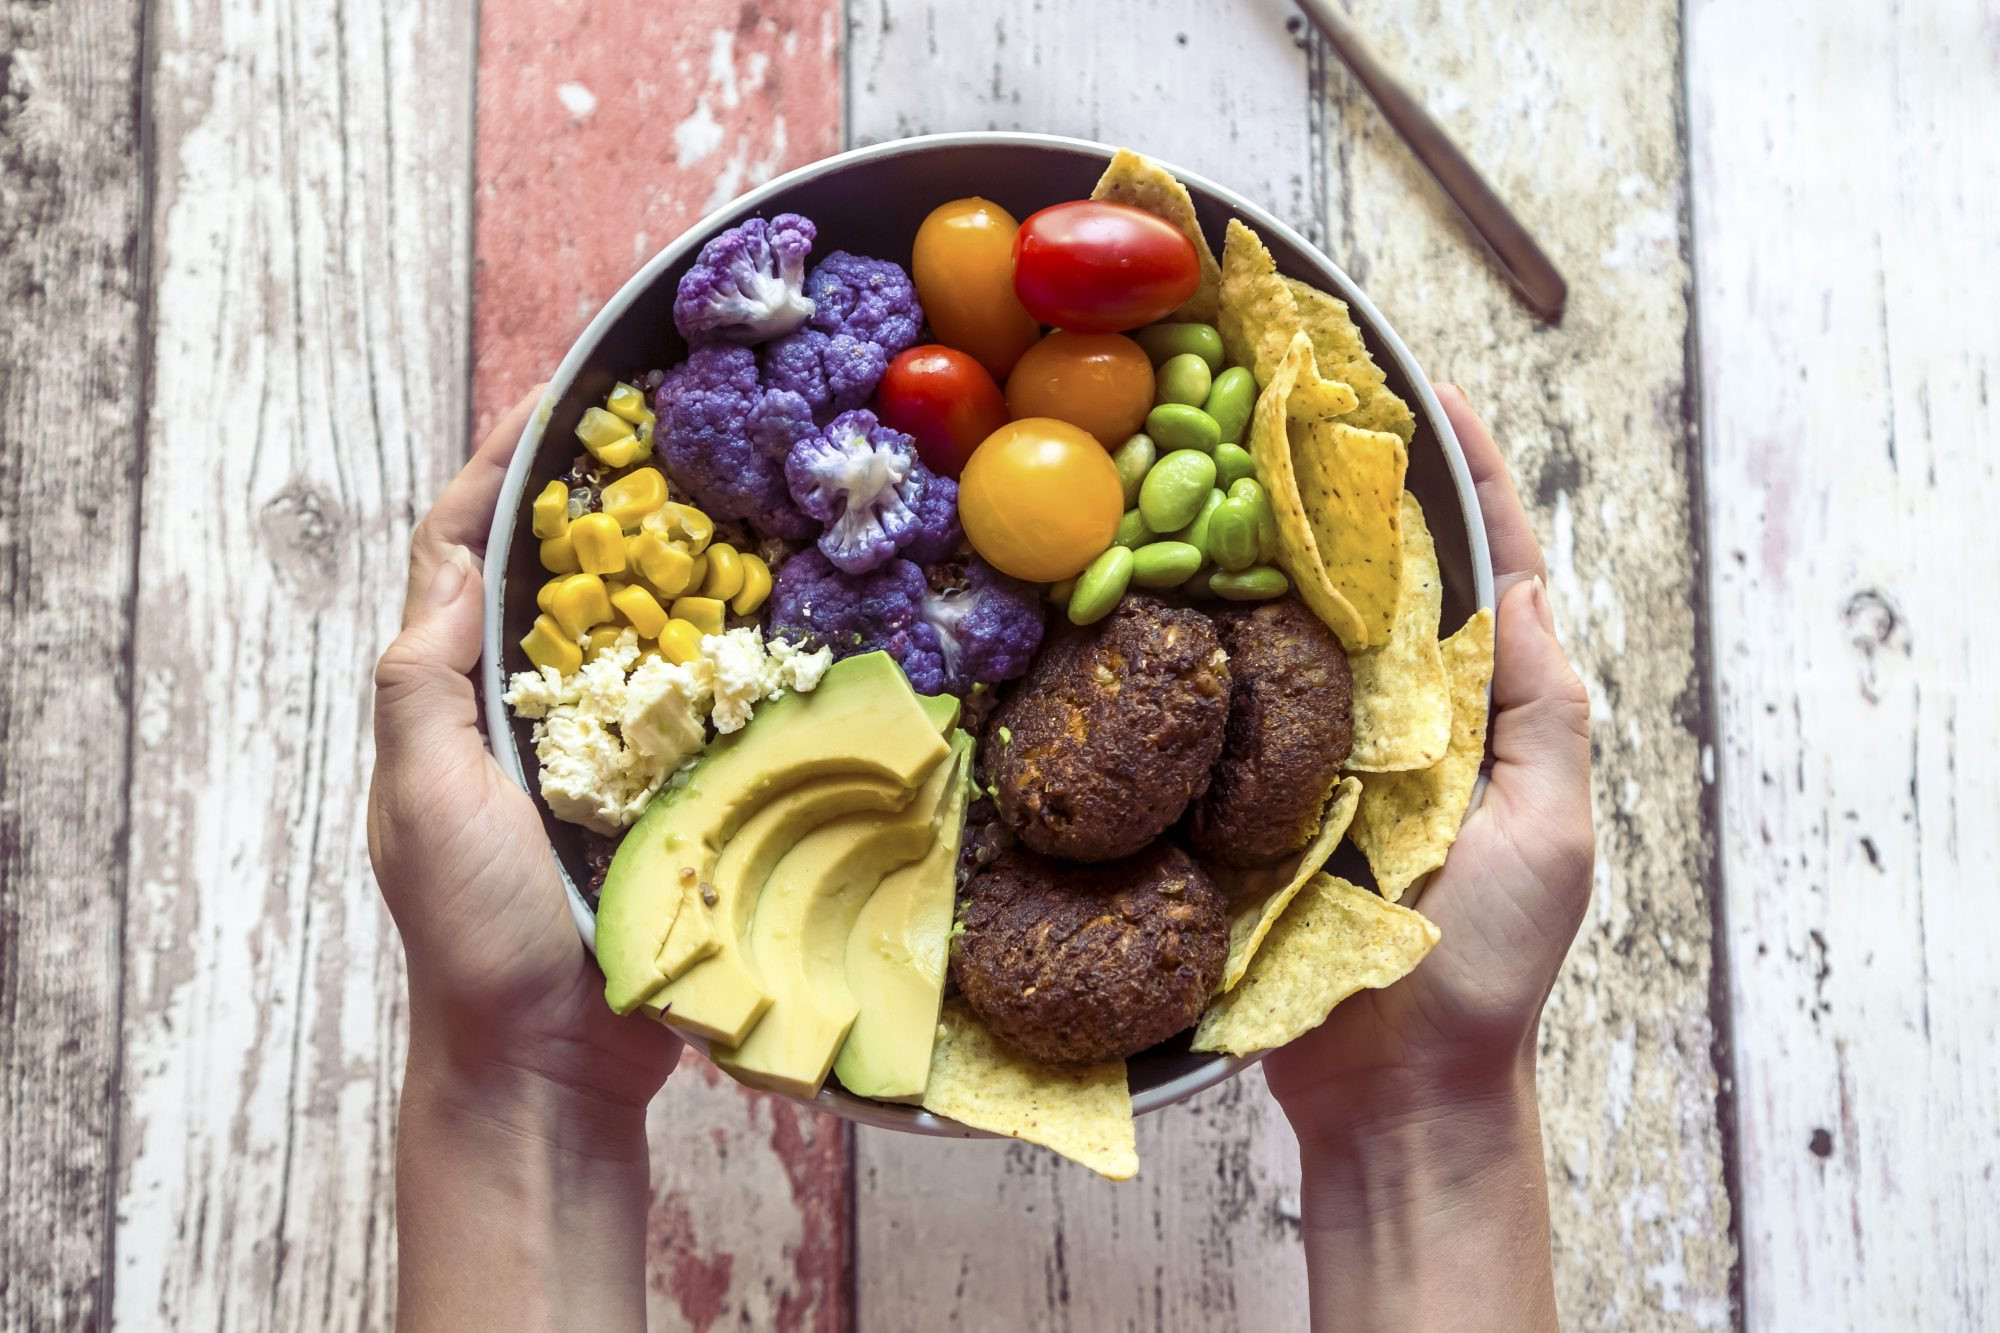 planetary diet vegetarian pescatarian red meat fruits vegetables health healthy digestion planet earth sustainable